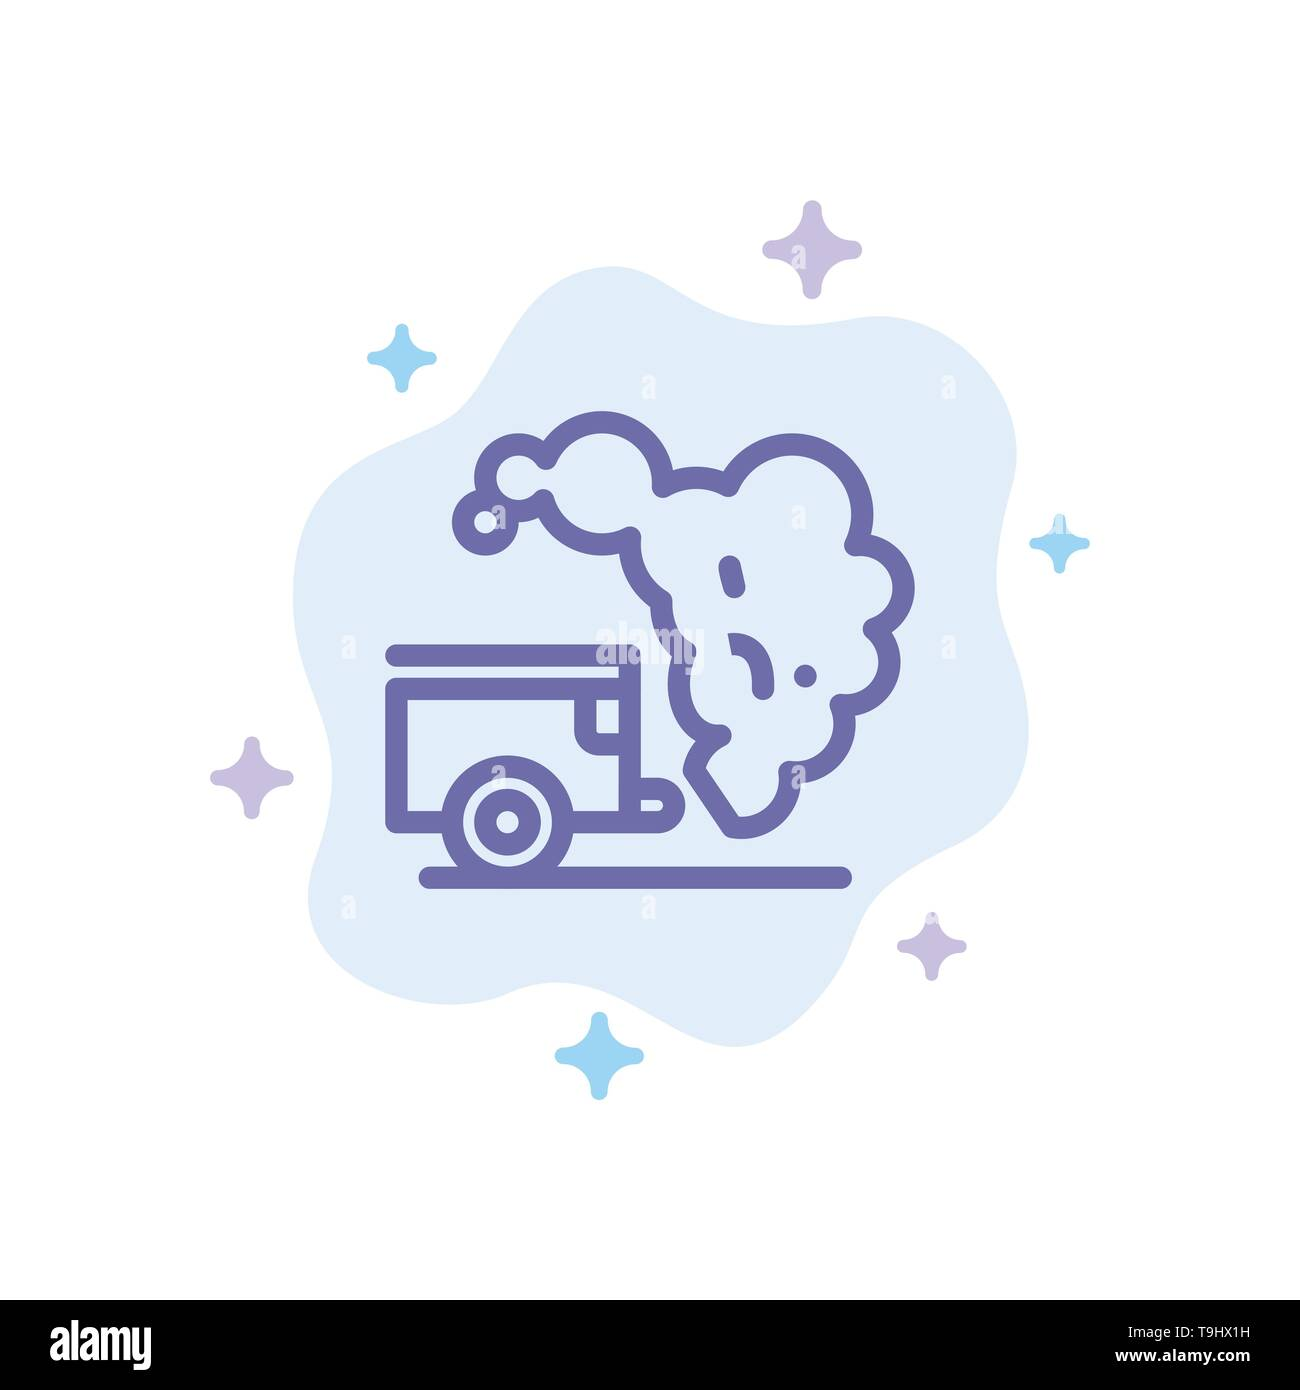 Dump, Environment, Garbage, Pollution Blue Icon on Abstract Cloud Background - Stock Image